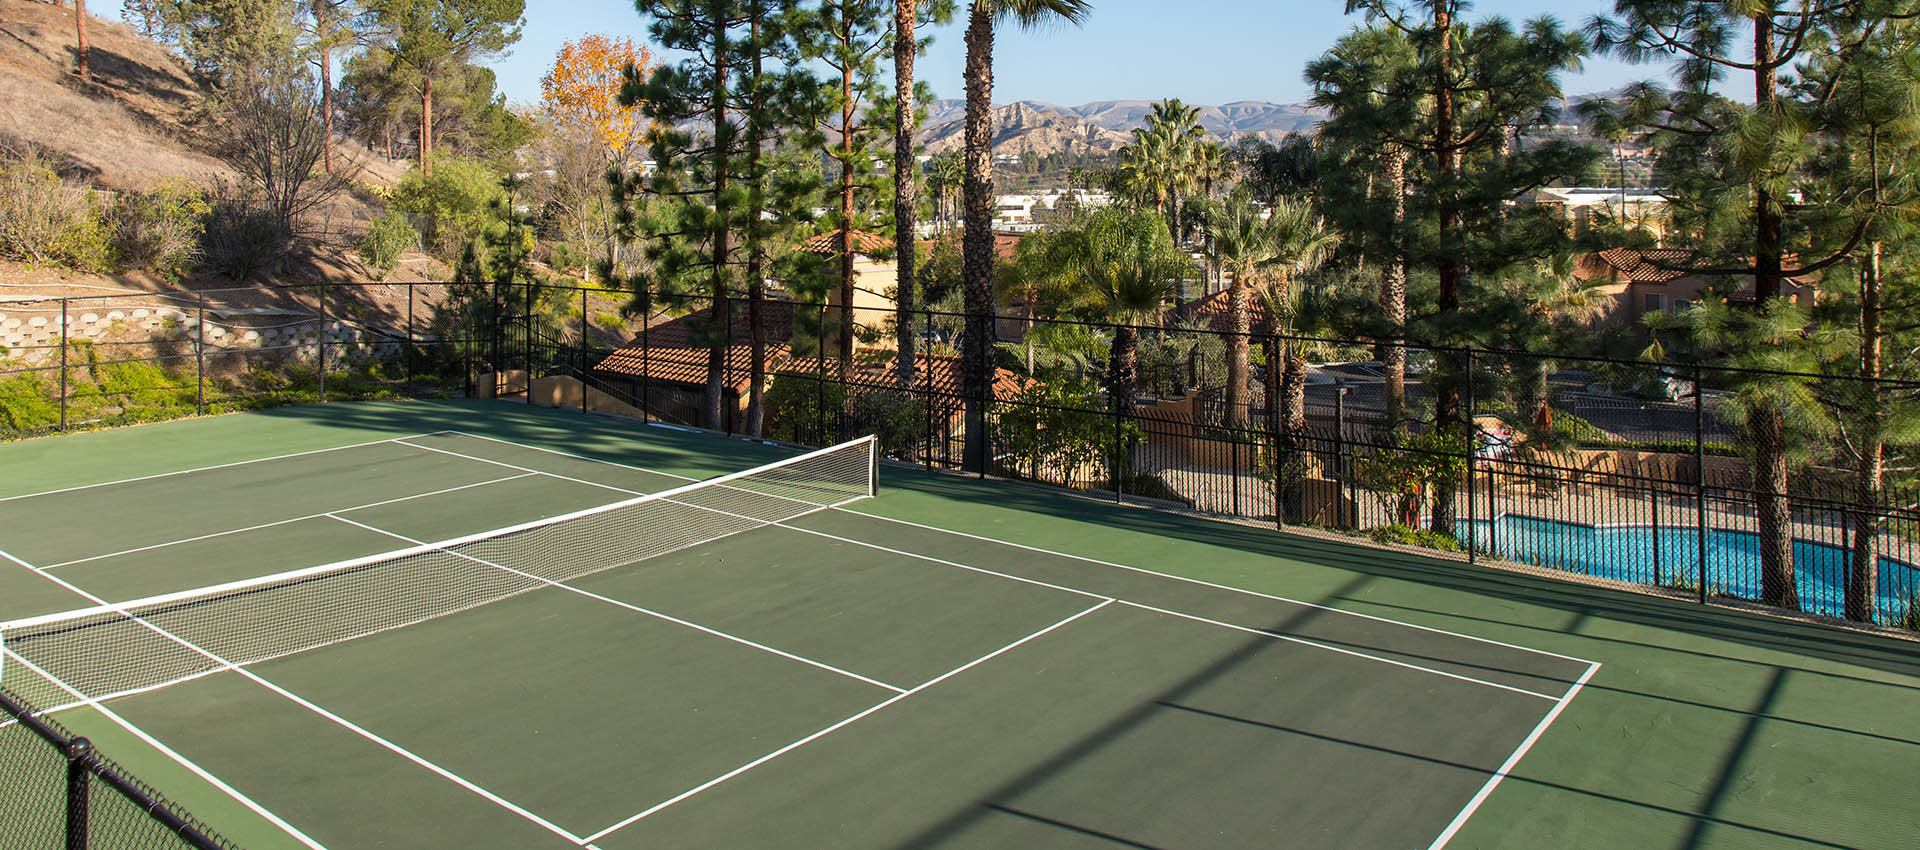 Tennis Court at Shadow Ridge Apartment Homes in Simi Valley